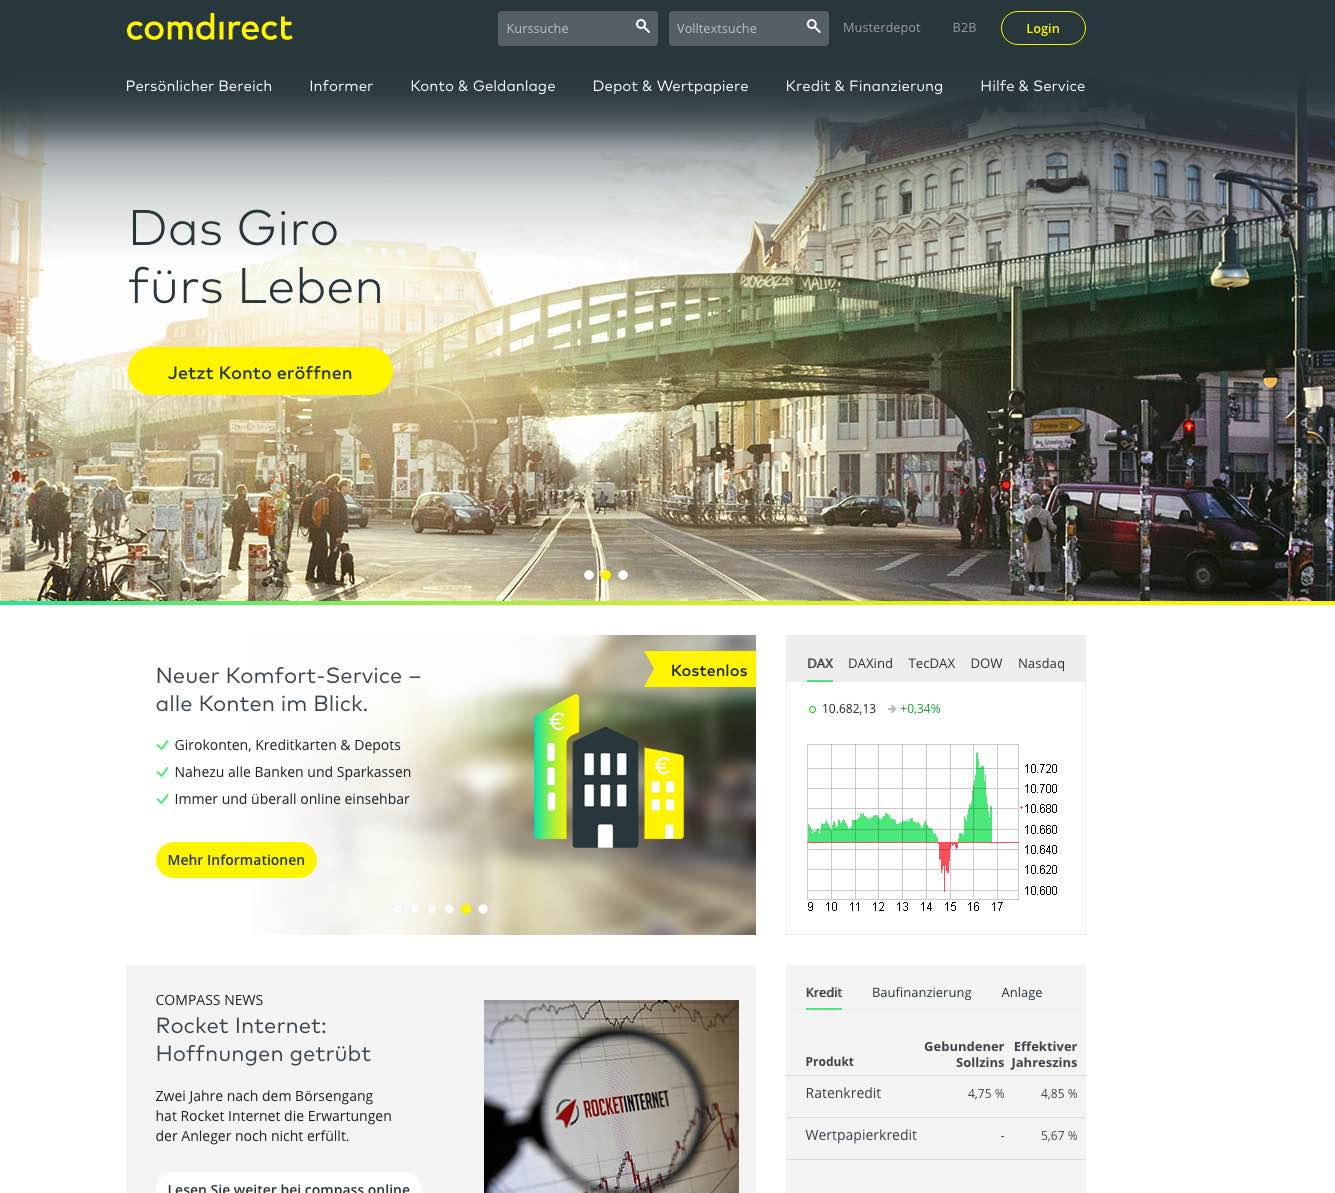 comdirect girokonto test